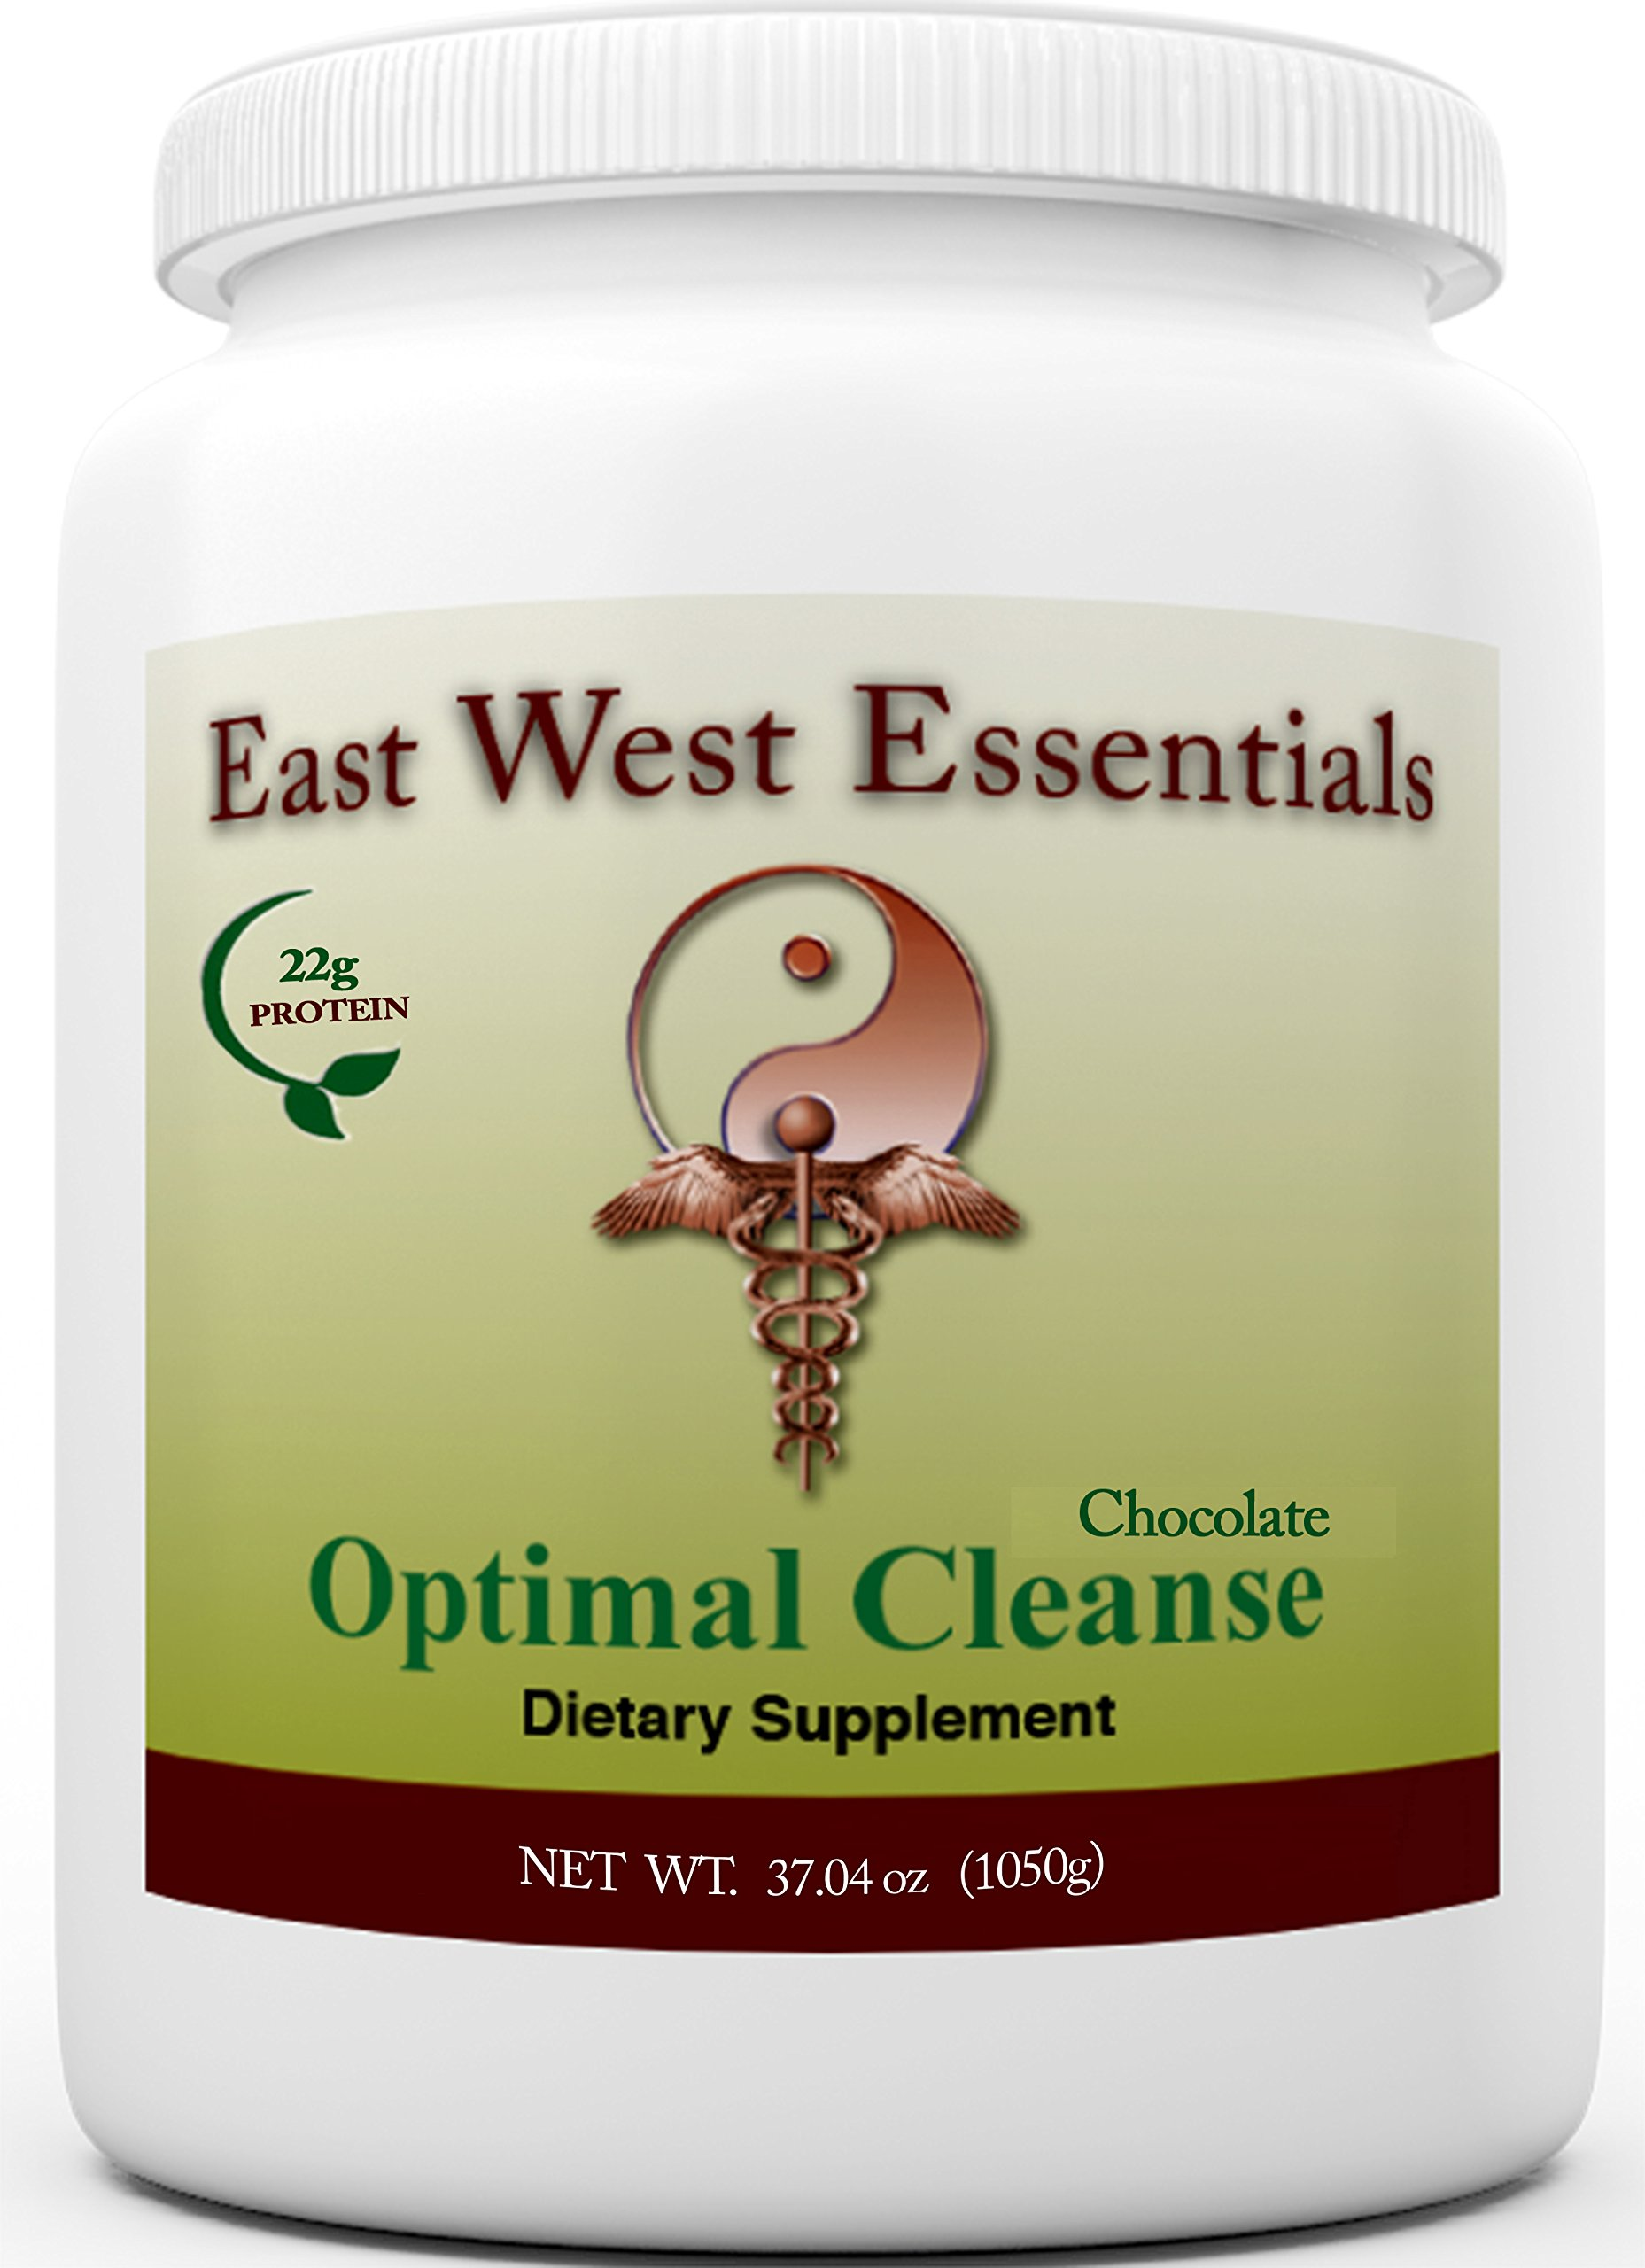 Optimal Cleanse - Chocolate by East West Essentials - Helps Eliminate Toxins from The Liver and Fat Cells - AIDS in Weight Loss - Can Be Used As A Meal Replacement